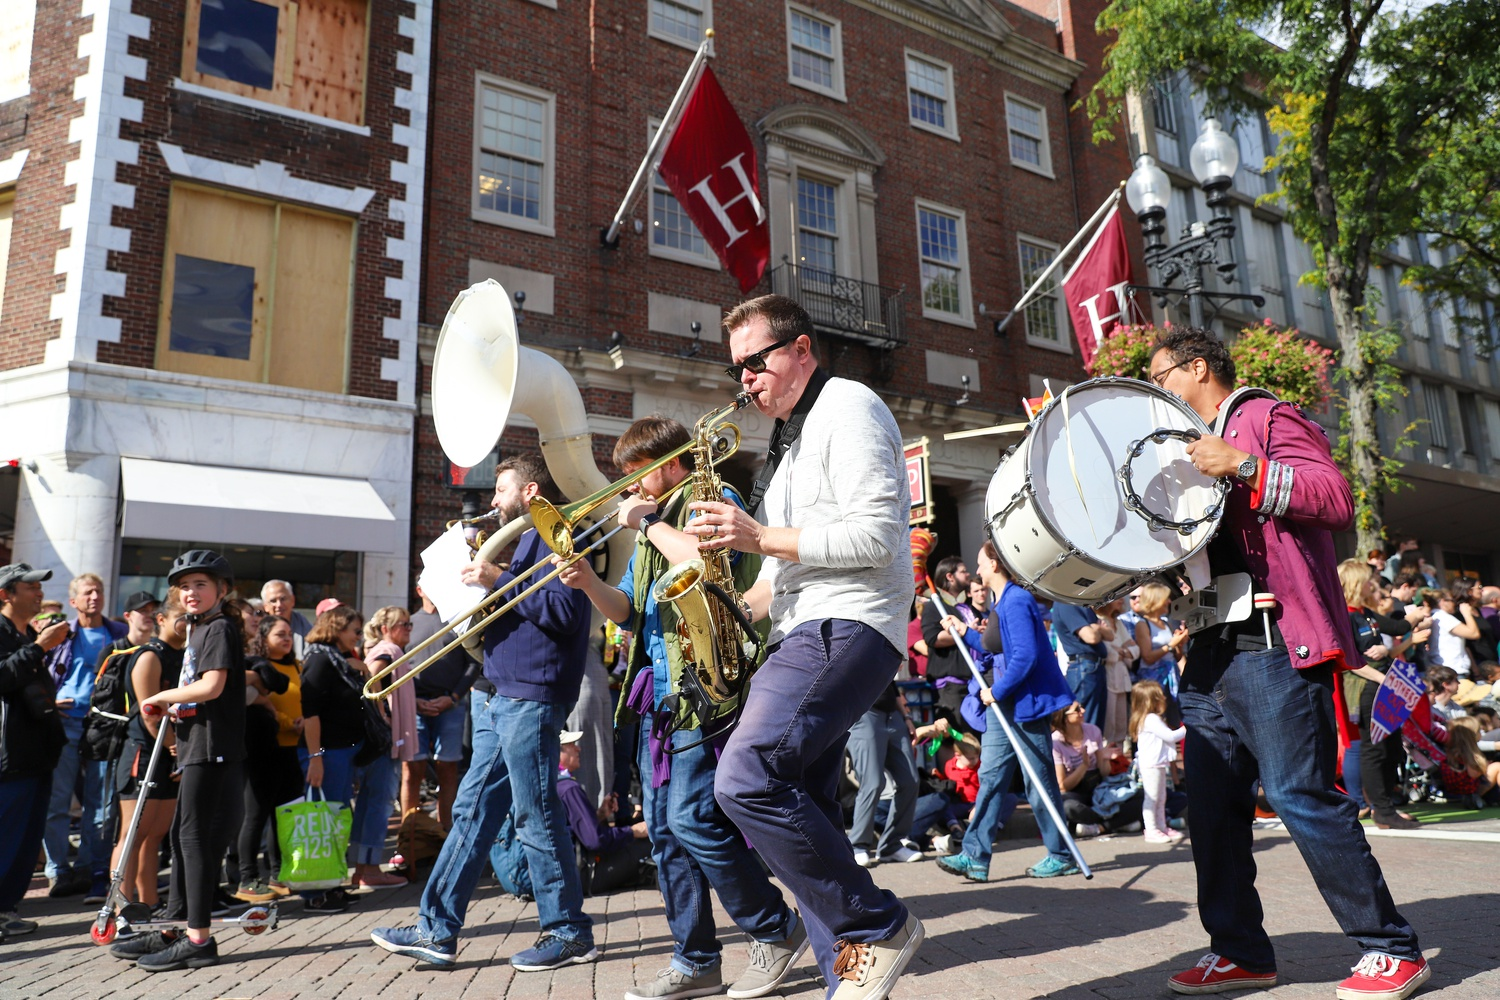 HONK! is a 3-day festival, usually occurring during Indigenous People's Day Weekend, thats brings brass bands from all over the world to Somerville to celebrate music, community, and activism.